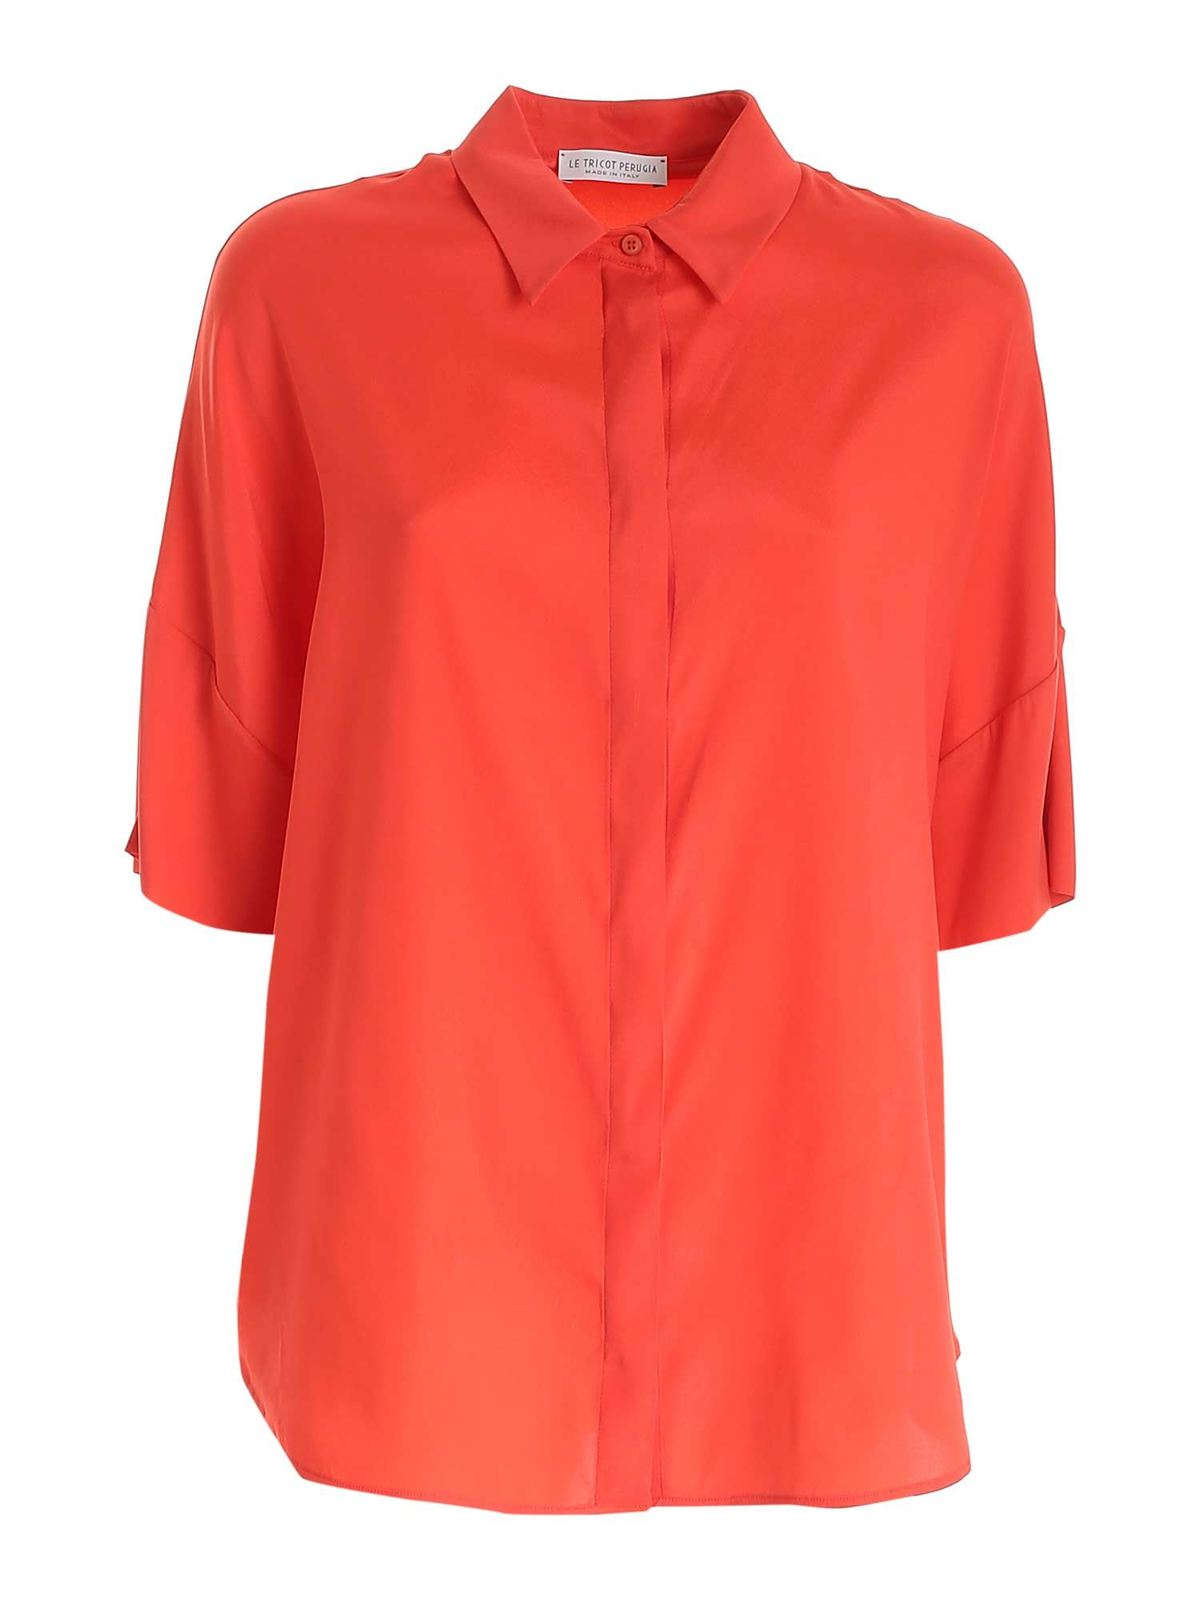 Le Tricot Perugia Silks CORAL RED SHIRT